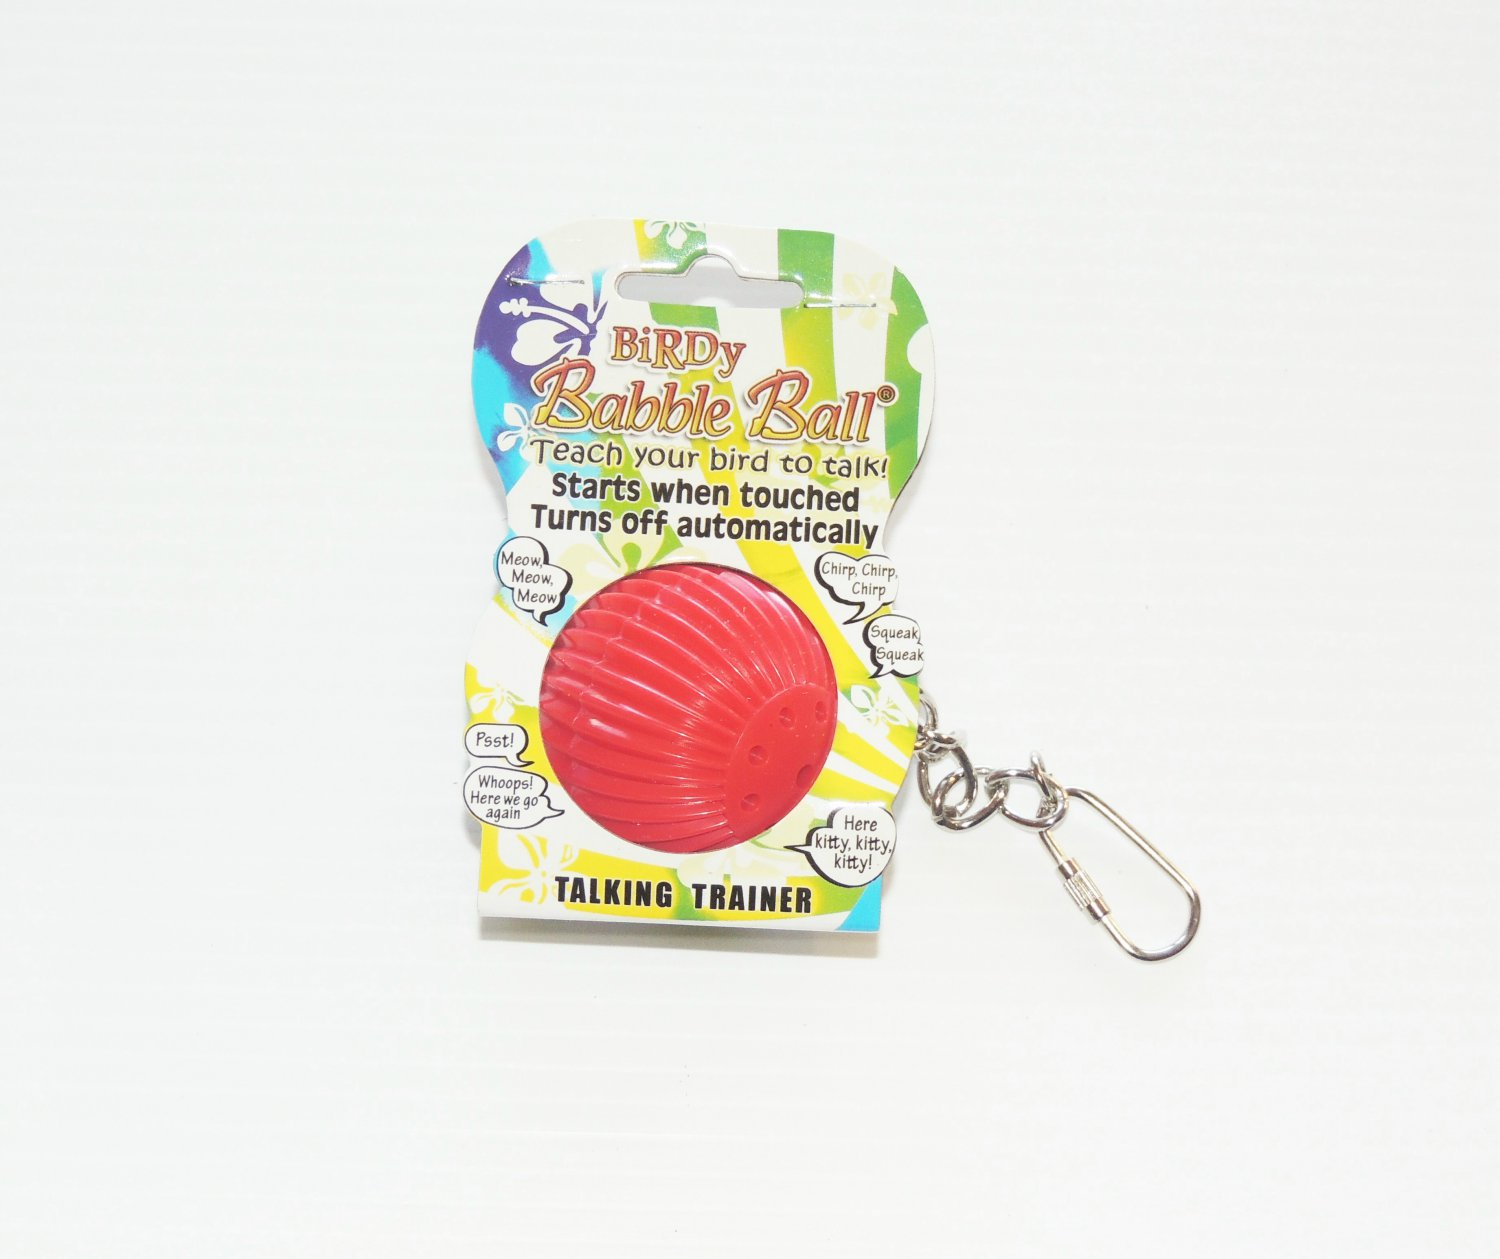 BABBLE BALL bird toy talking trainer parrots w/chain